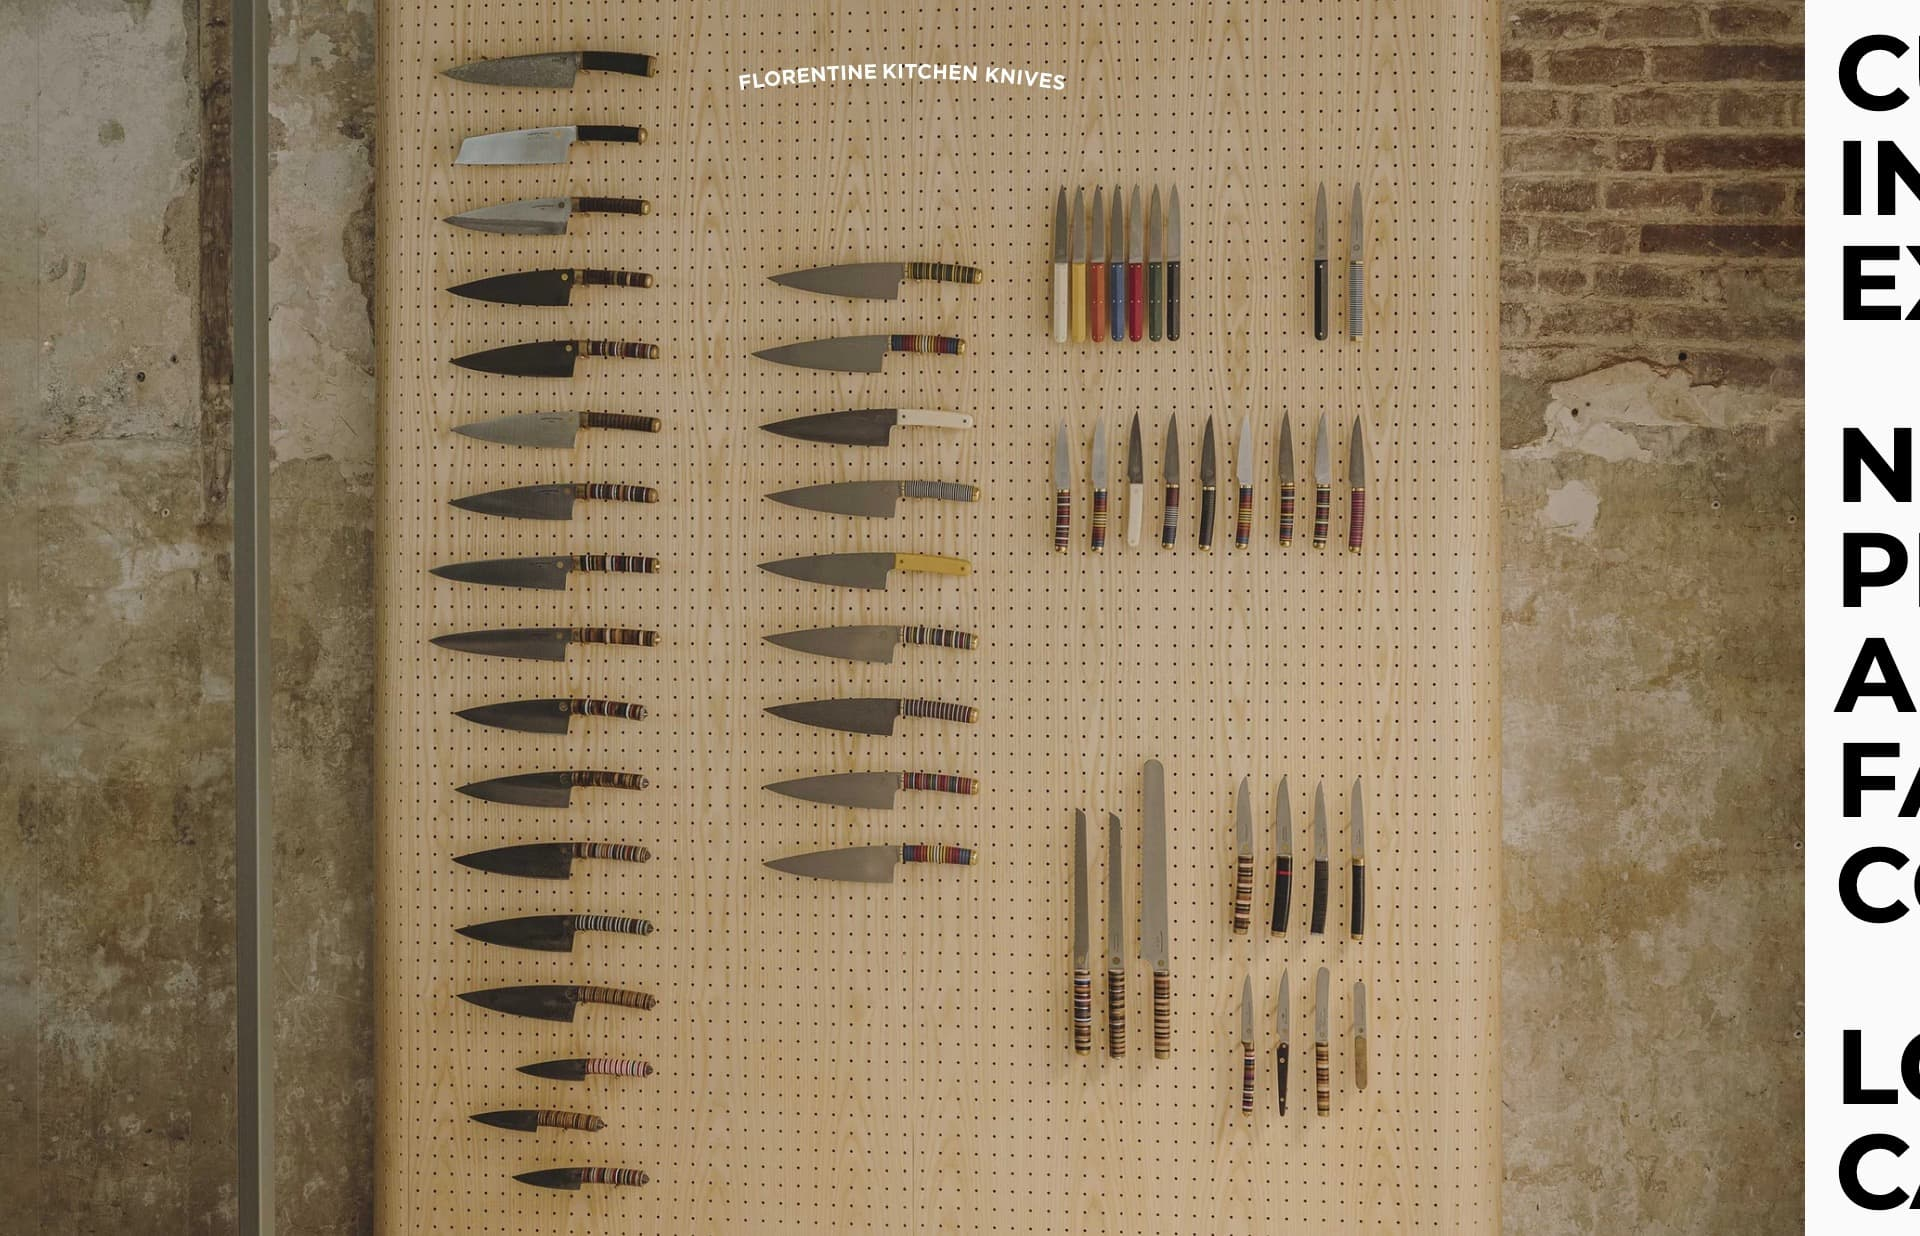 Screenshot of the website Florentine Kitchen Knives, featured on The Gallery, a curated collection of minimal websites